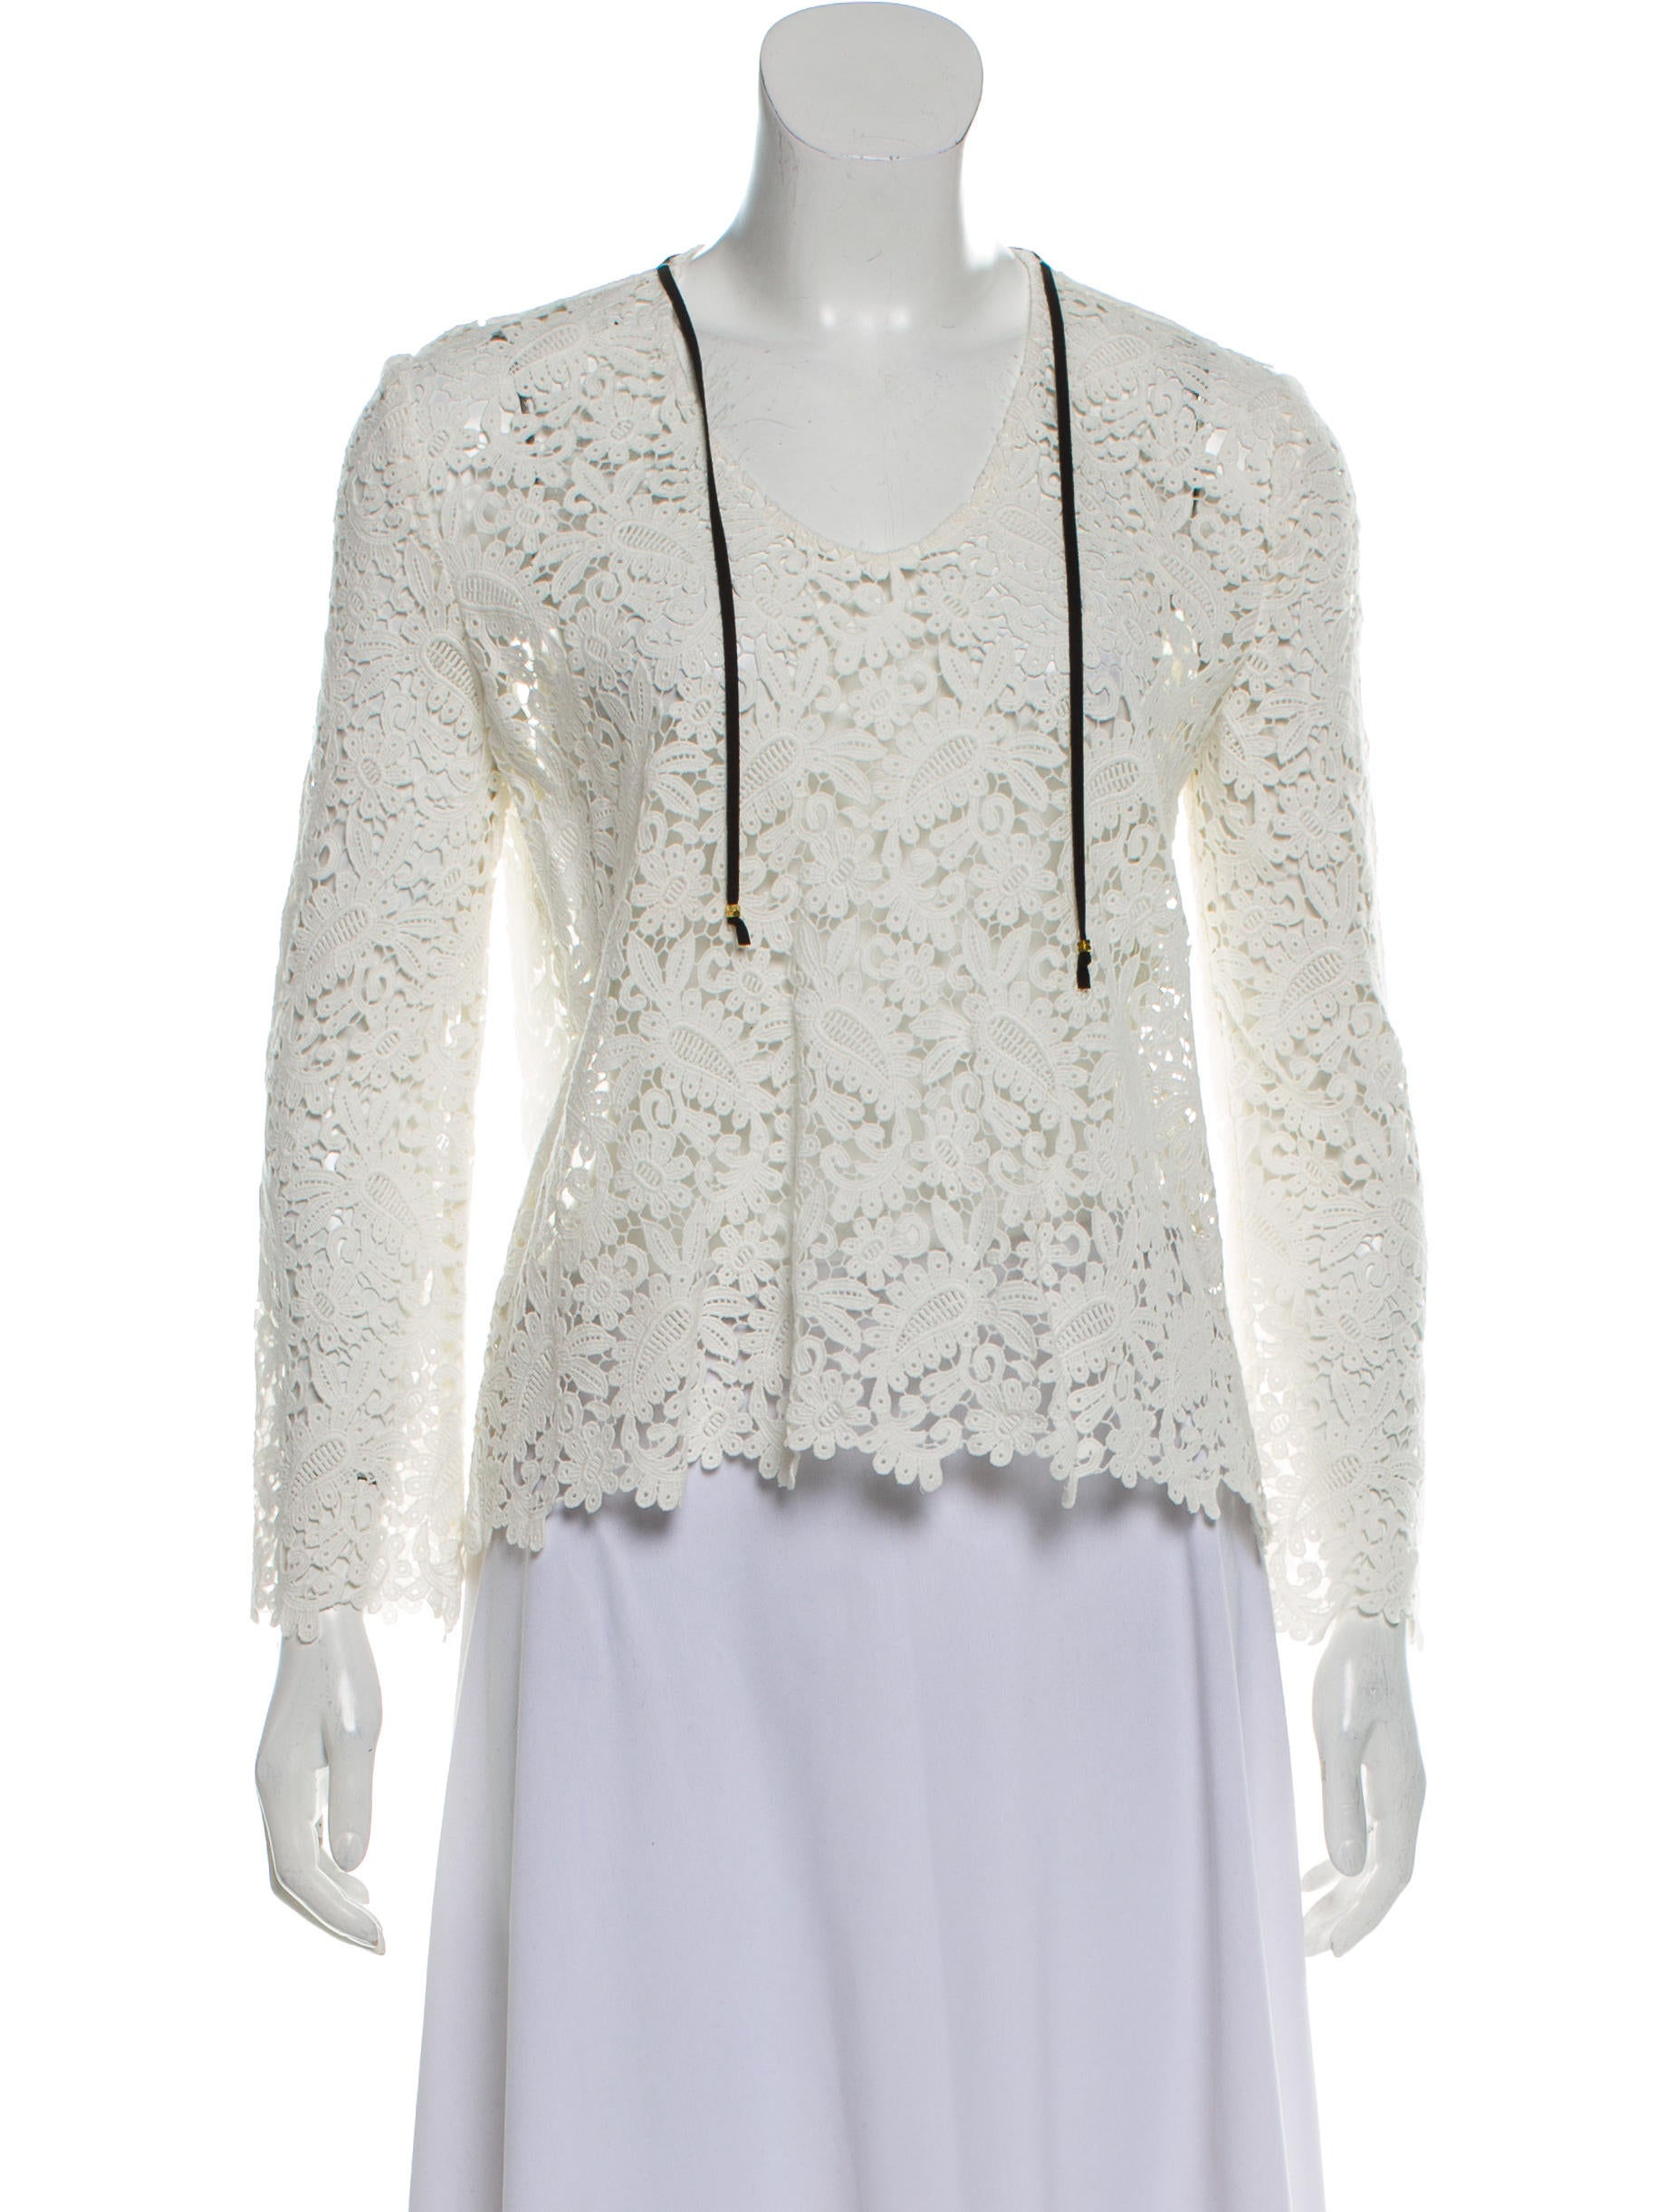 50fdd8112f87ee Maje Guipure Lace Long Sleeve Top - Clothing - W2M35191